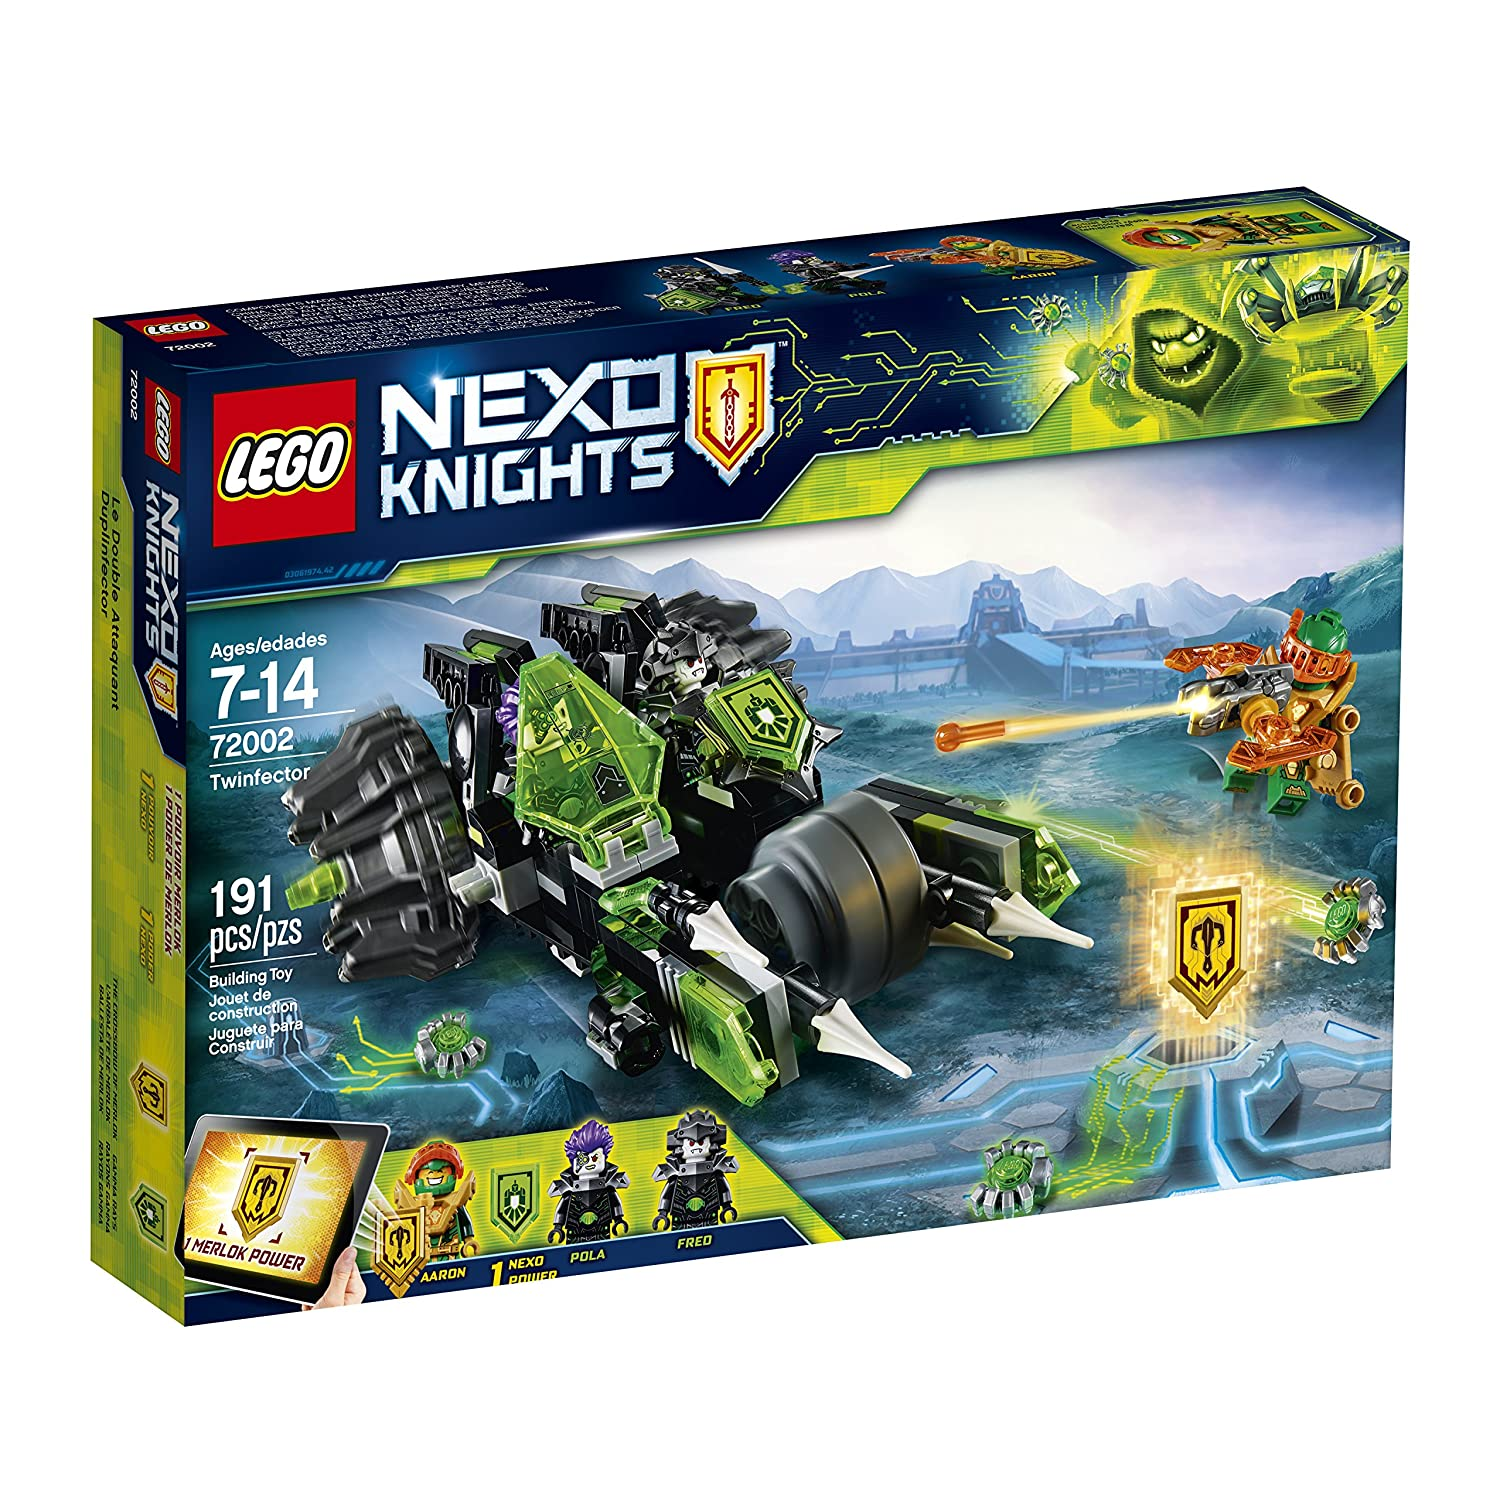 Top 9 Best LEGO Nexo Knights Set Reviews in 2021 11